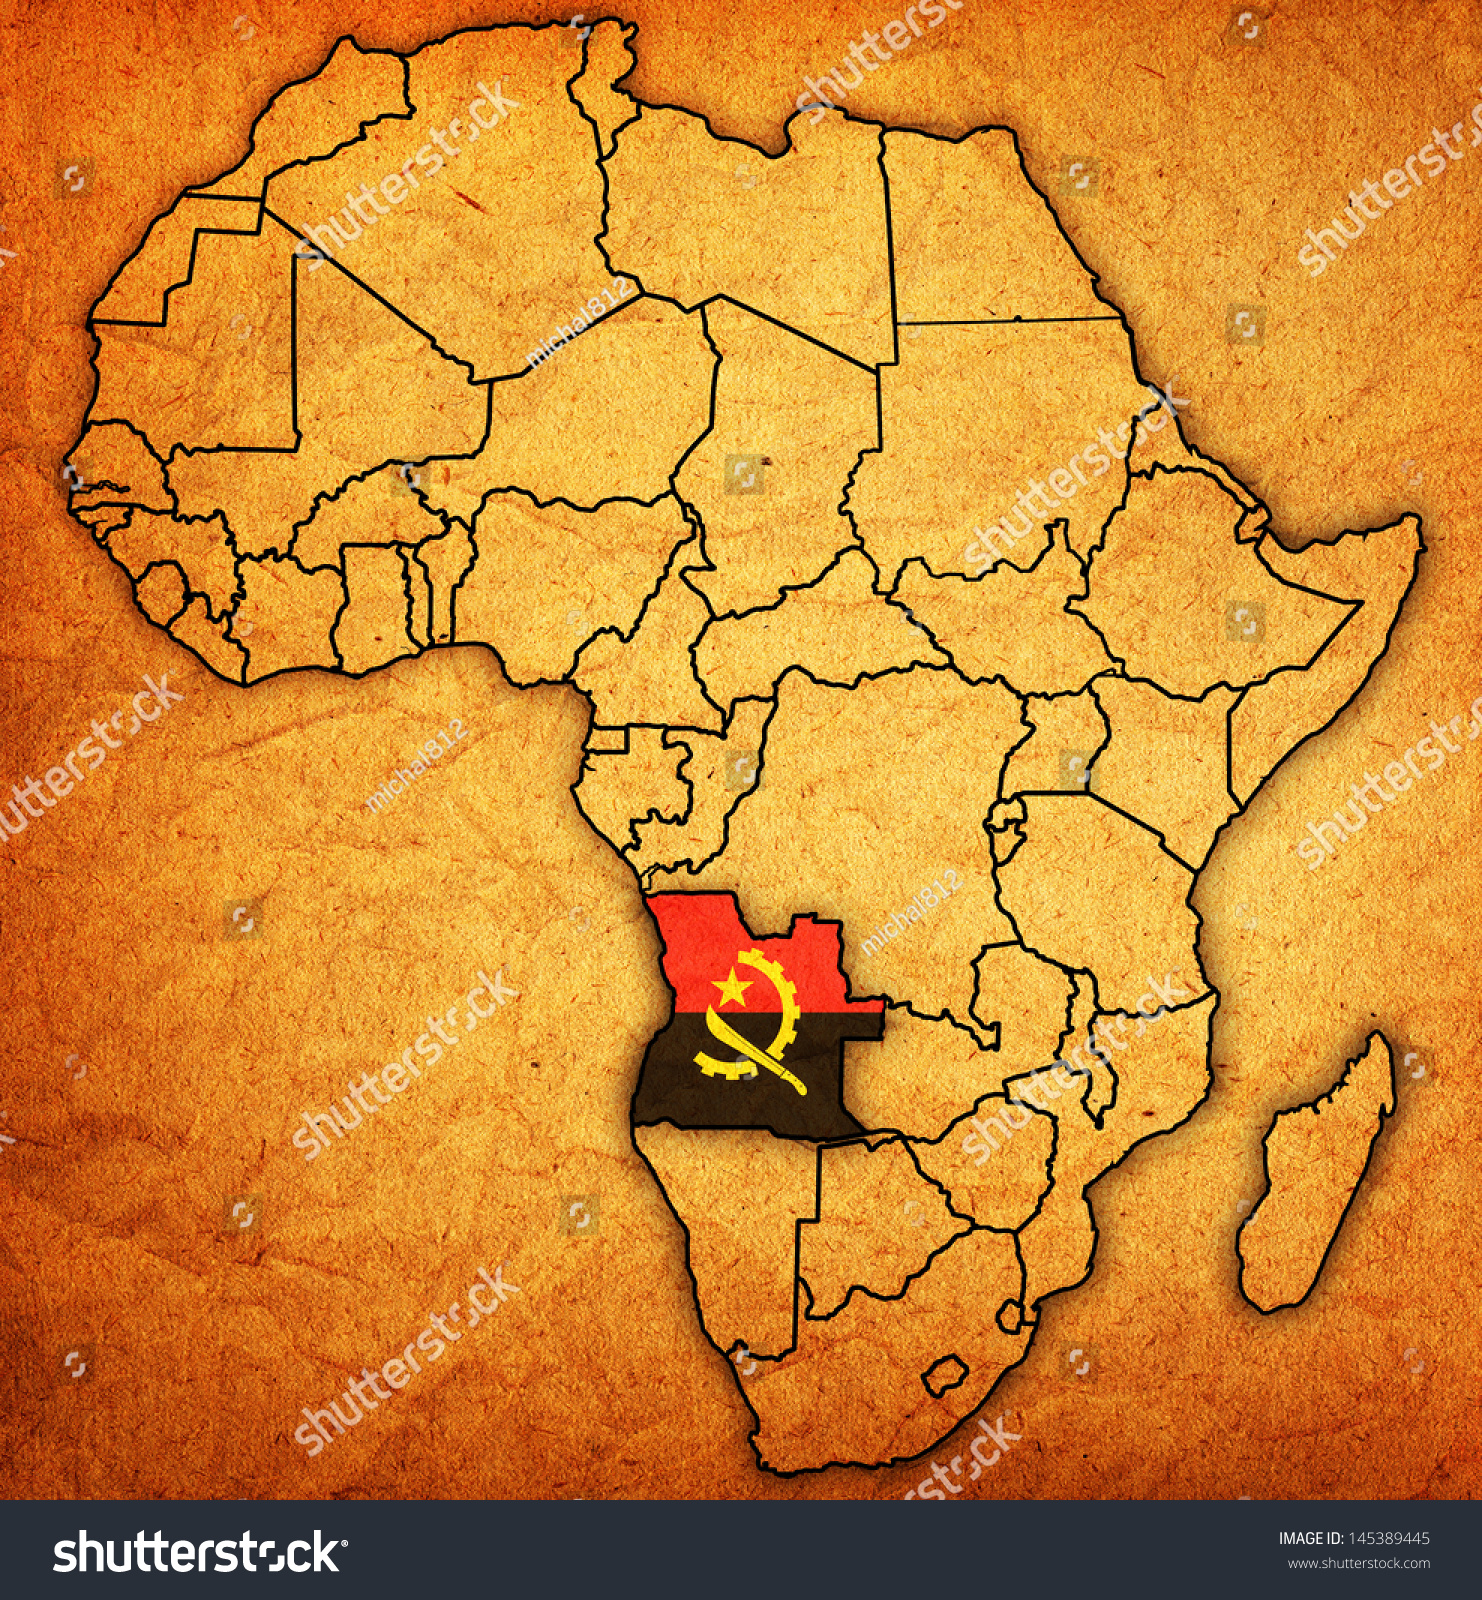 Angola On Africa Map.Angola On Actual Vintage Political Map Stock Illustration Royalty